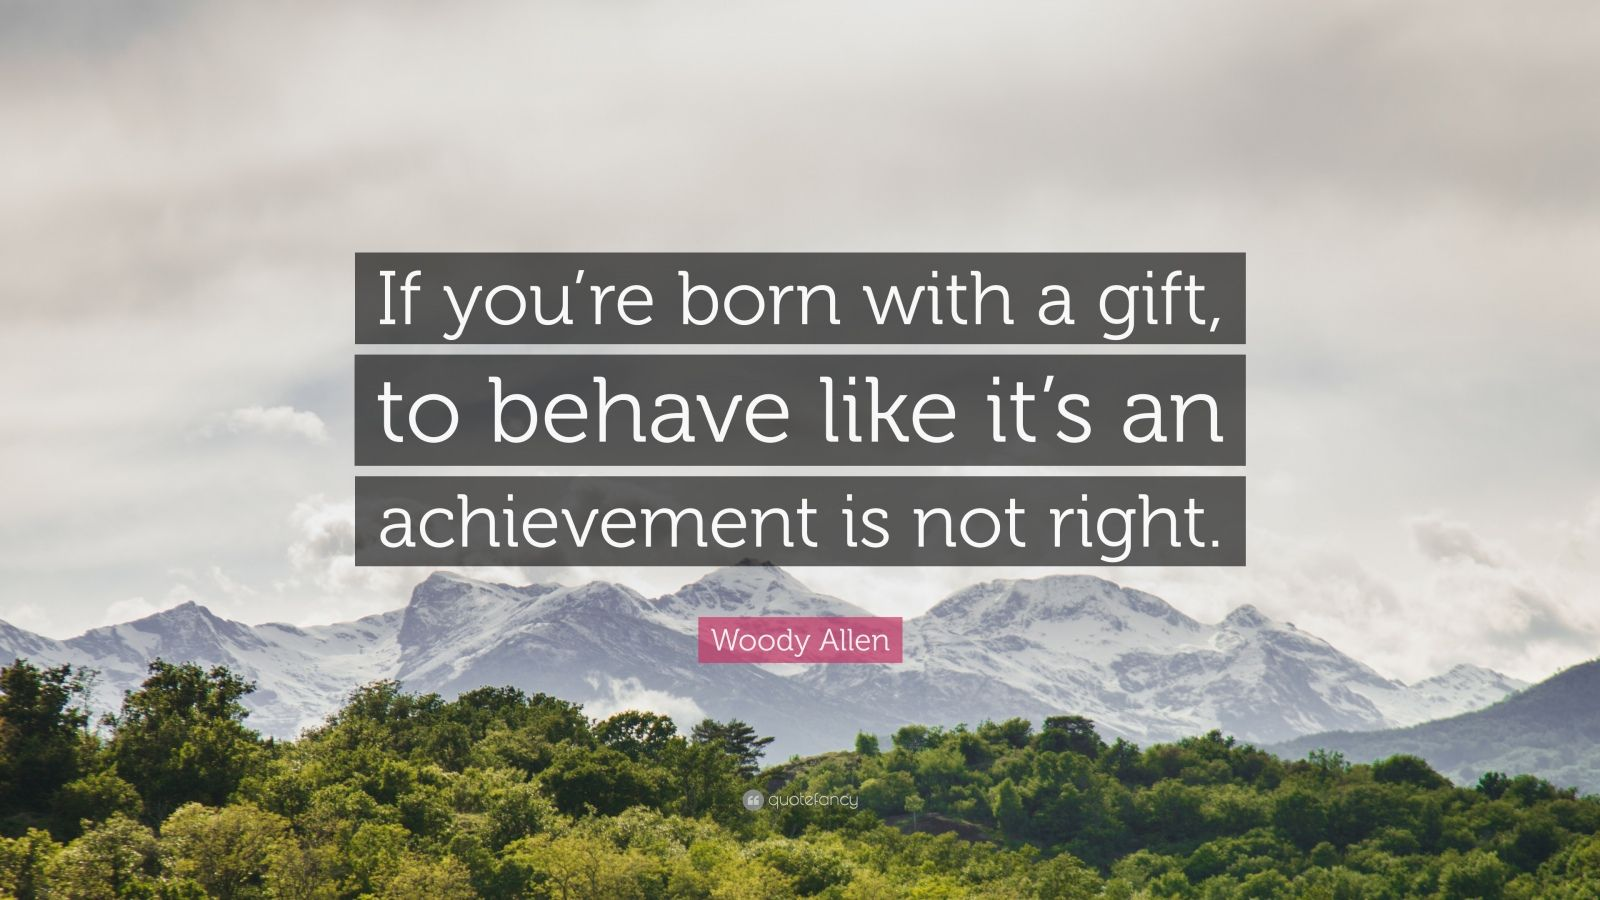 """Woody Allen Quote: """"If you're born with a gift, to behave like it's an achievement is not right."""""""